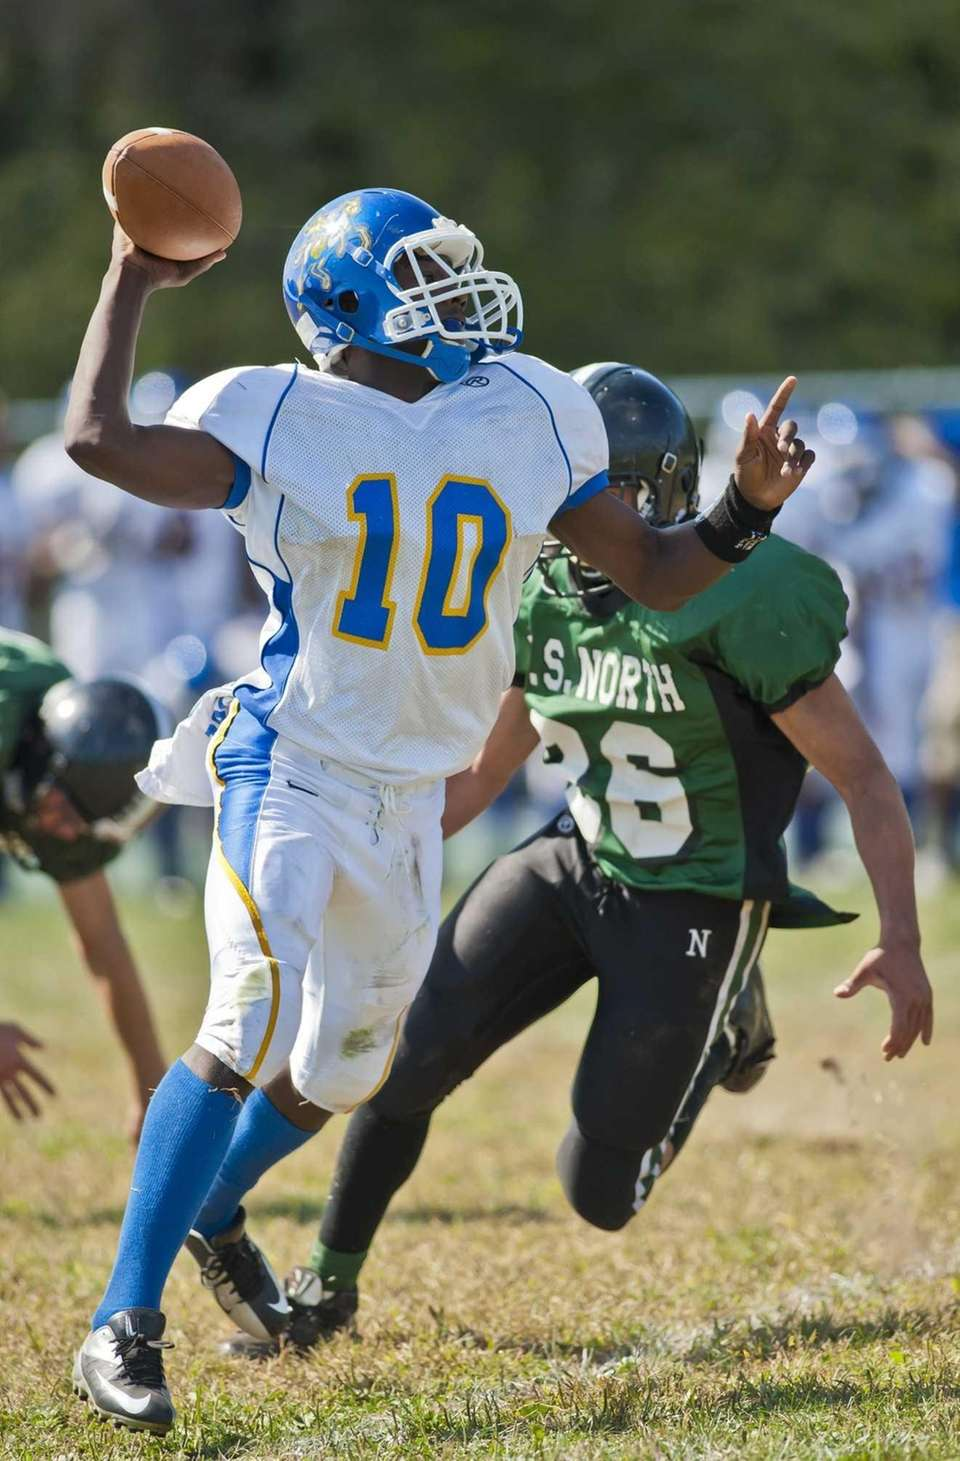 Roosevelt's Marquell Saunders picks up a loose ball